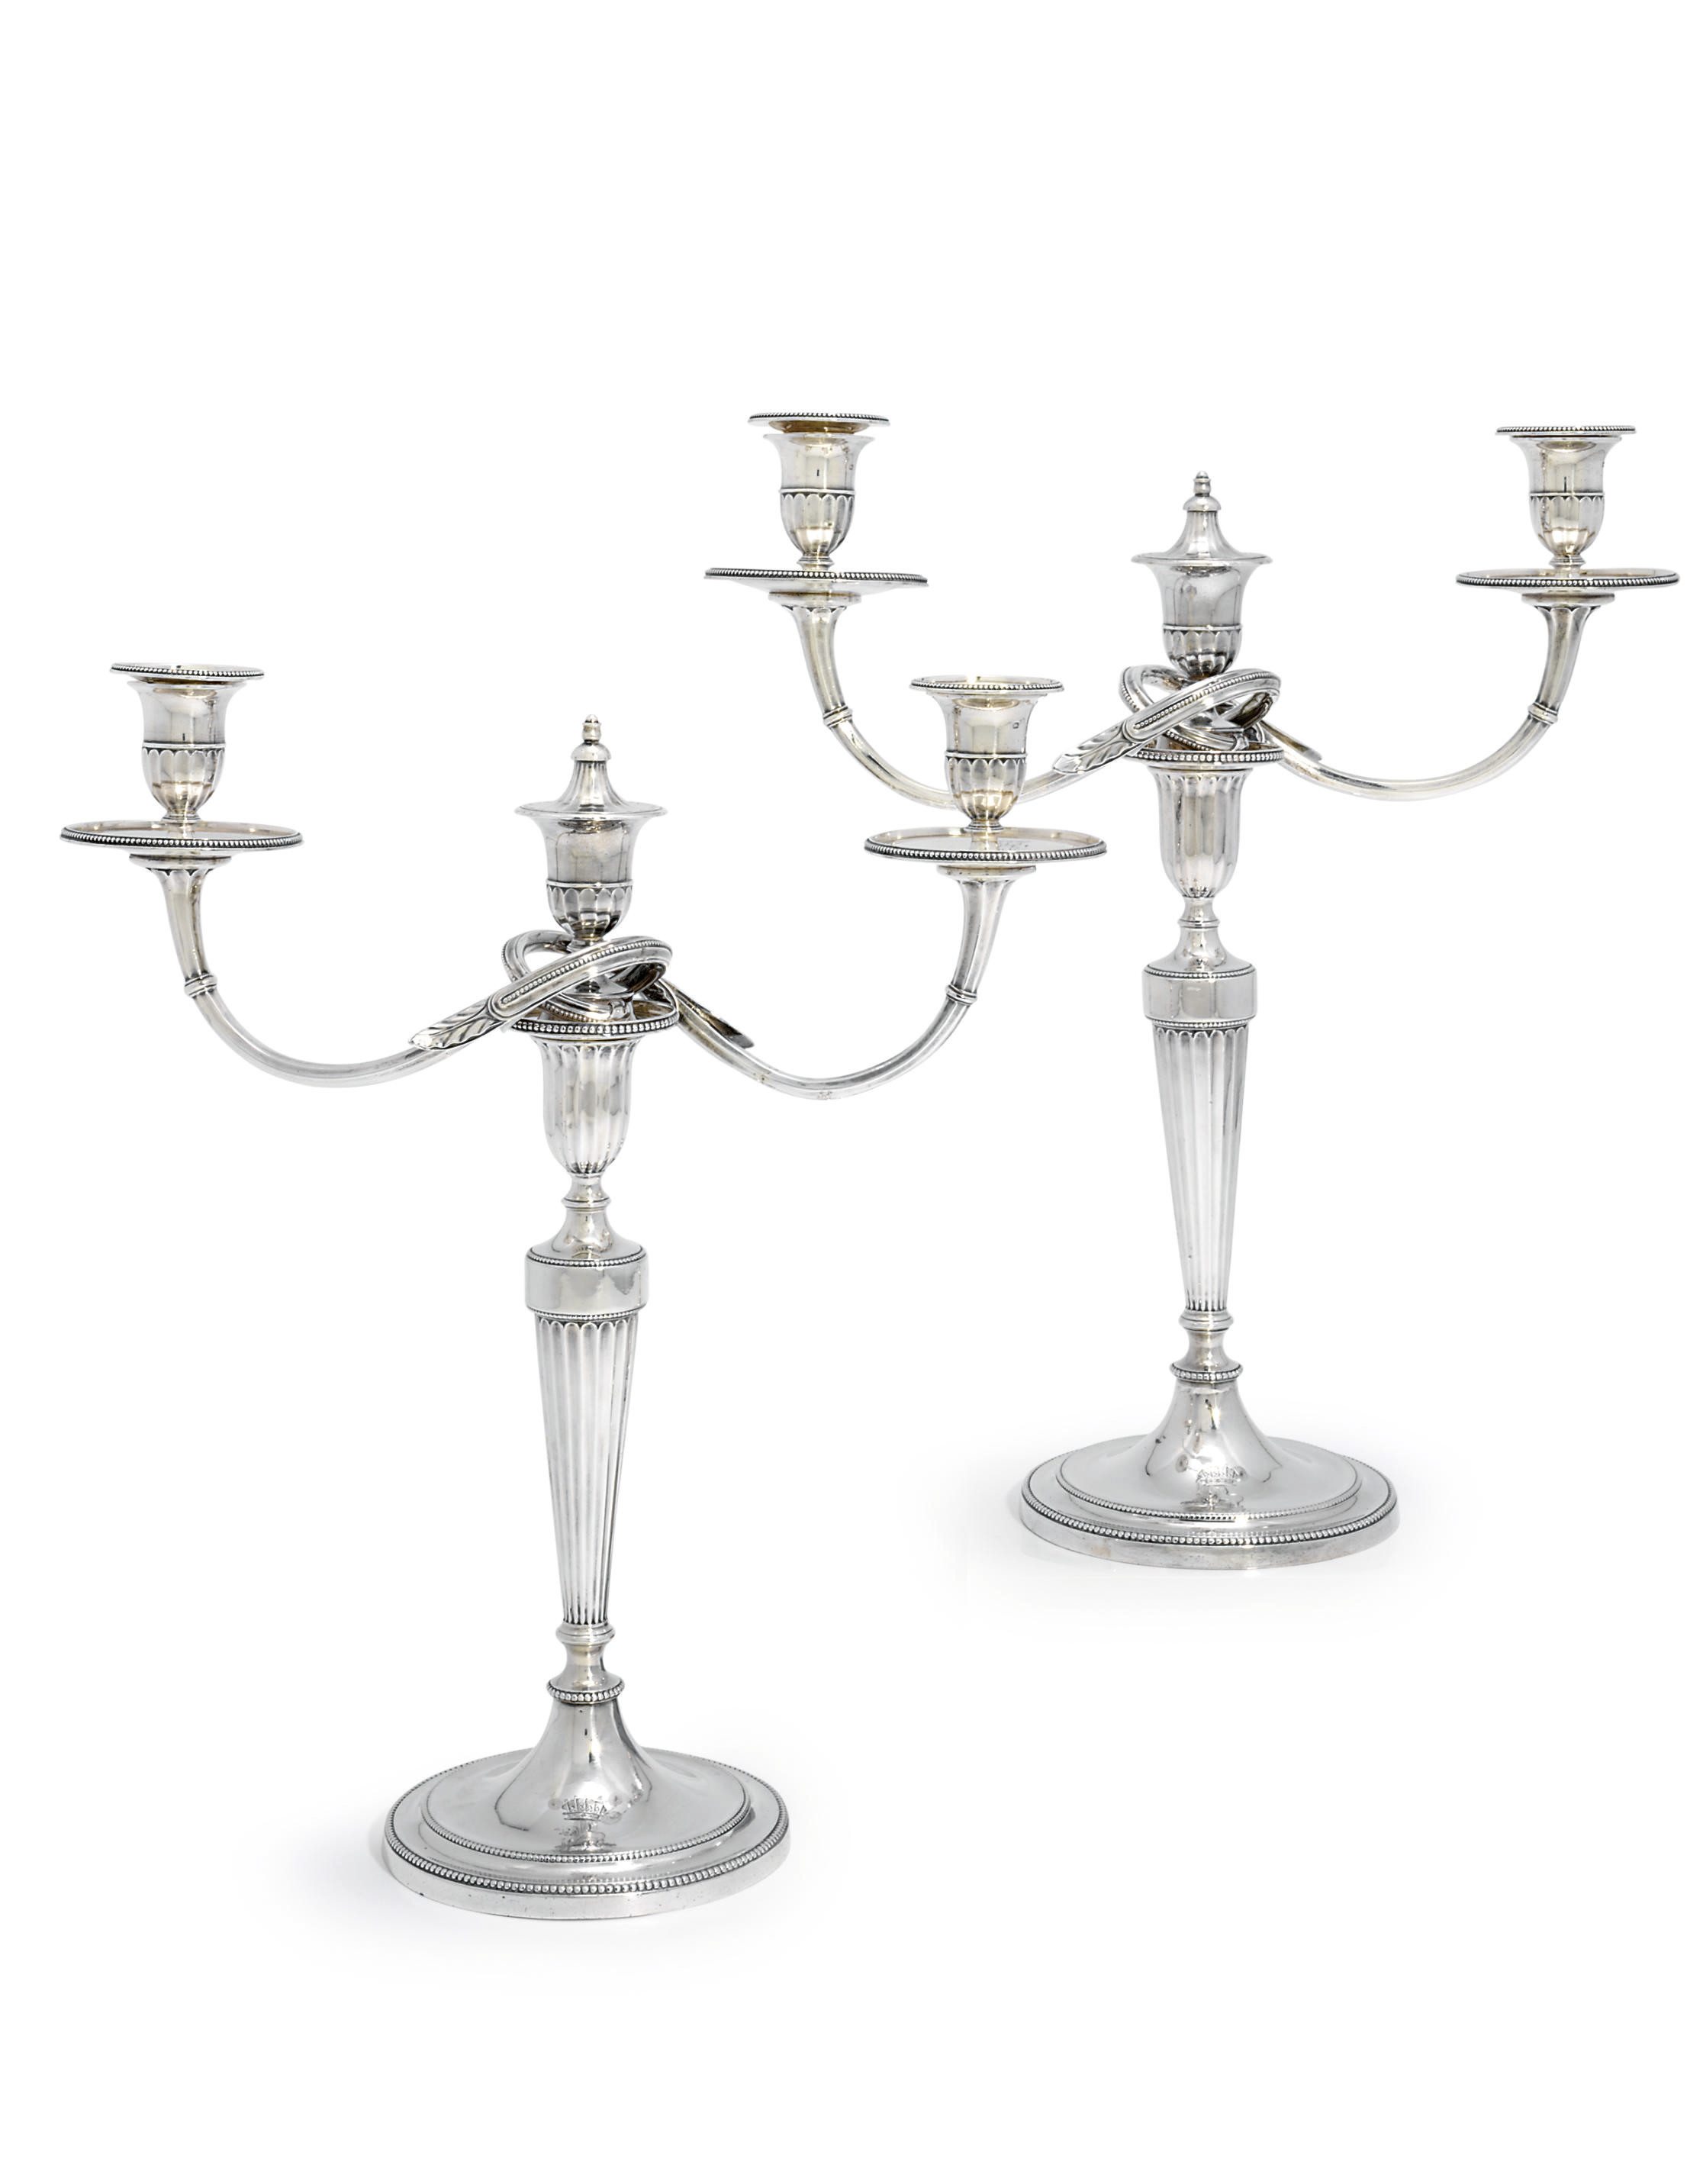 A PAIR OF GEORGE III SILVER TWO-LIGHT CANDELABRA